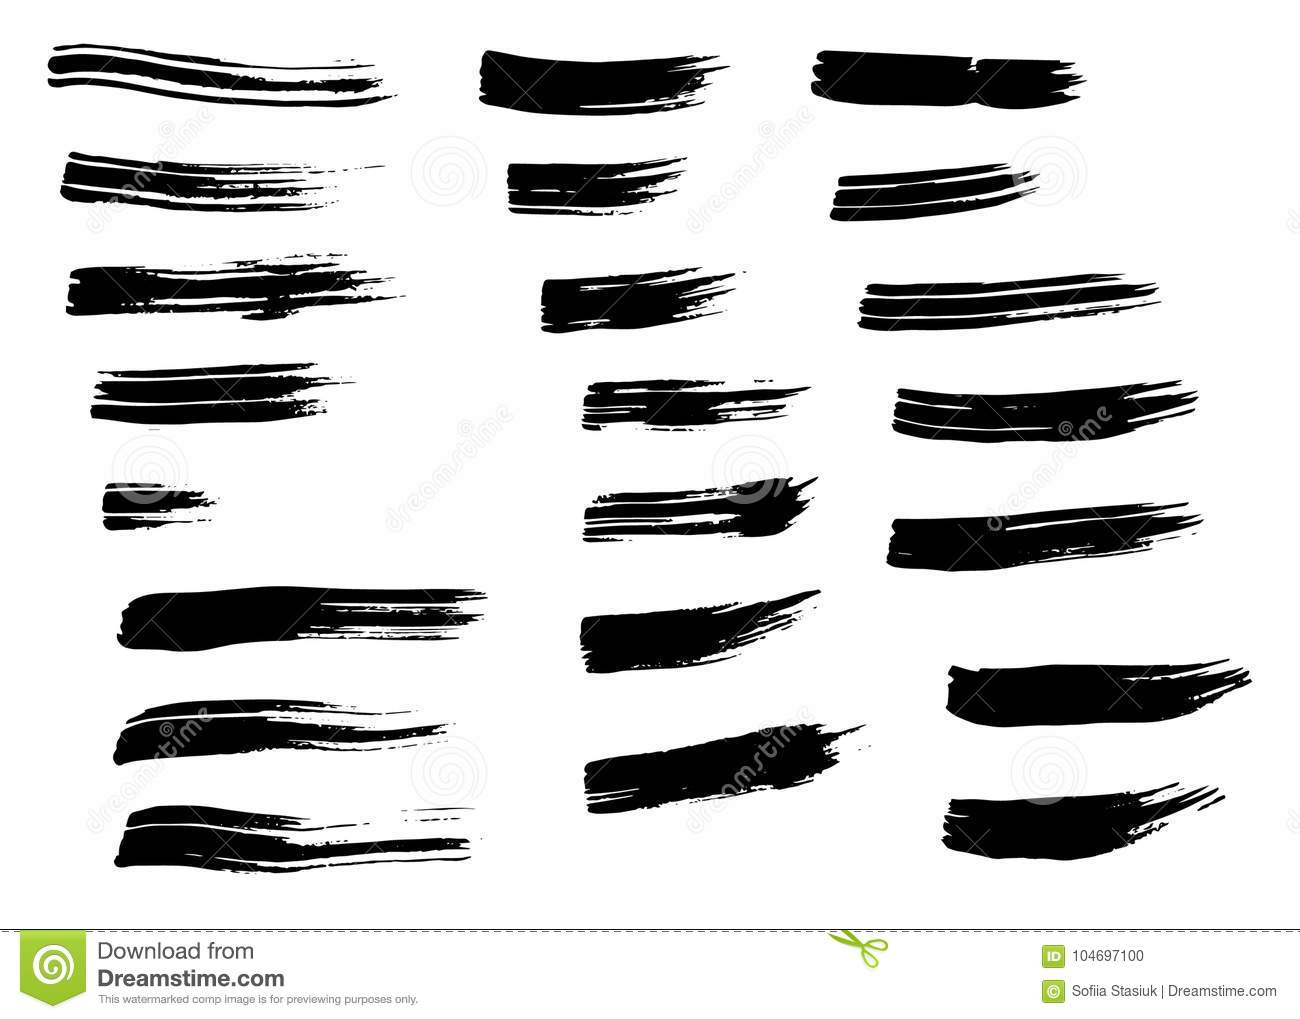 Grunge black hand drawn brush strokes isolated. Different dry vector brush strokes